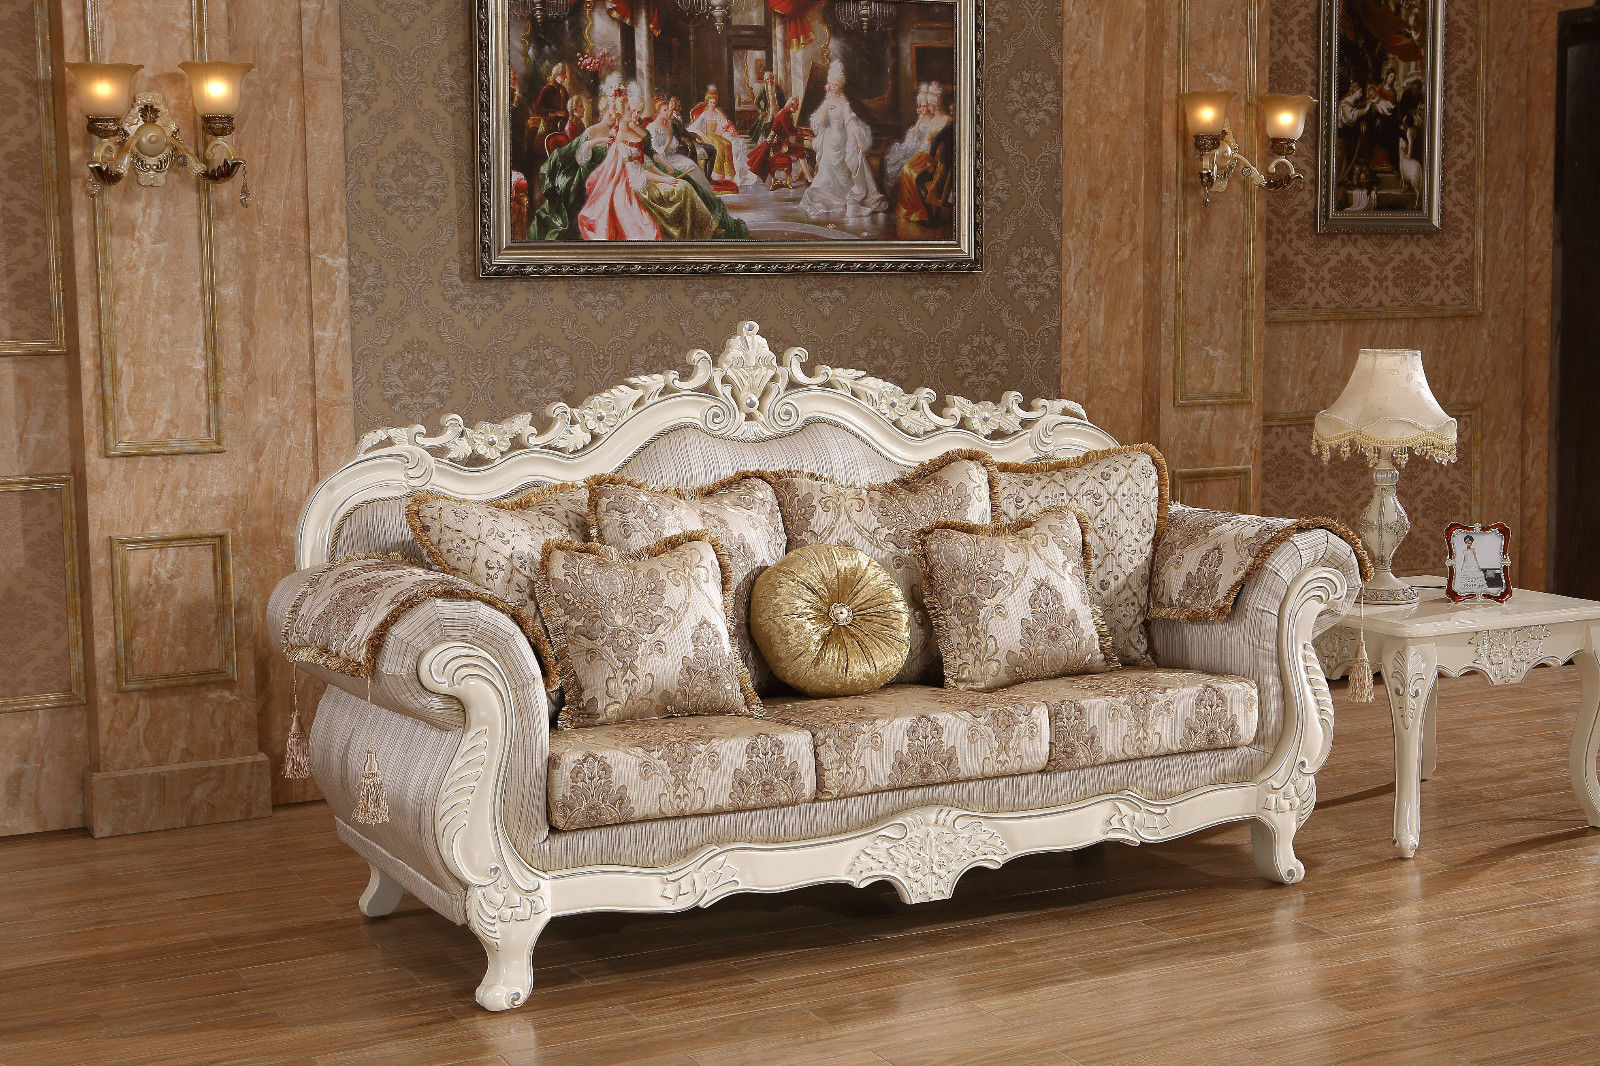 Meridian 691 Living Room Sofa Set 2pc. Upholstery Pearl White Traditional Style